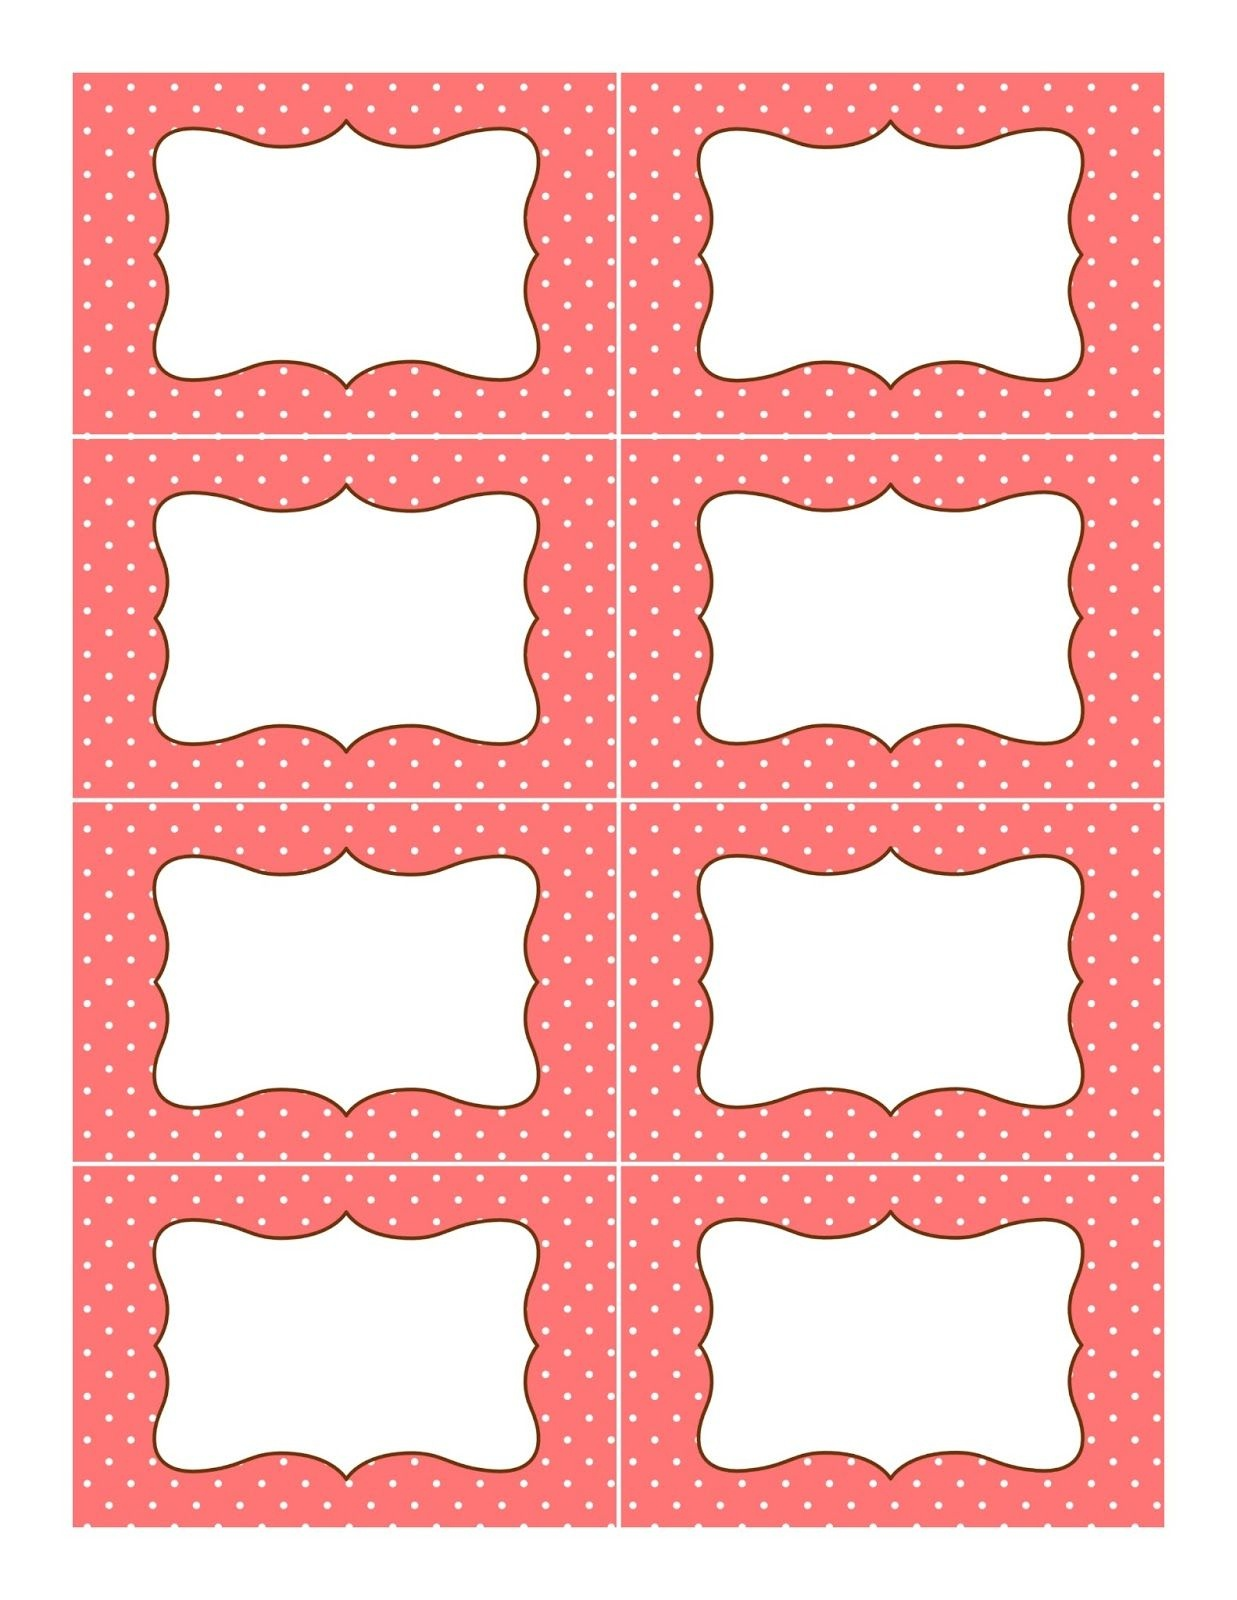 Pinbrenda Recinos On Labels | Printable Labels, Candy Buffet - Free Printable Candy Buffet Labels Templates